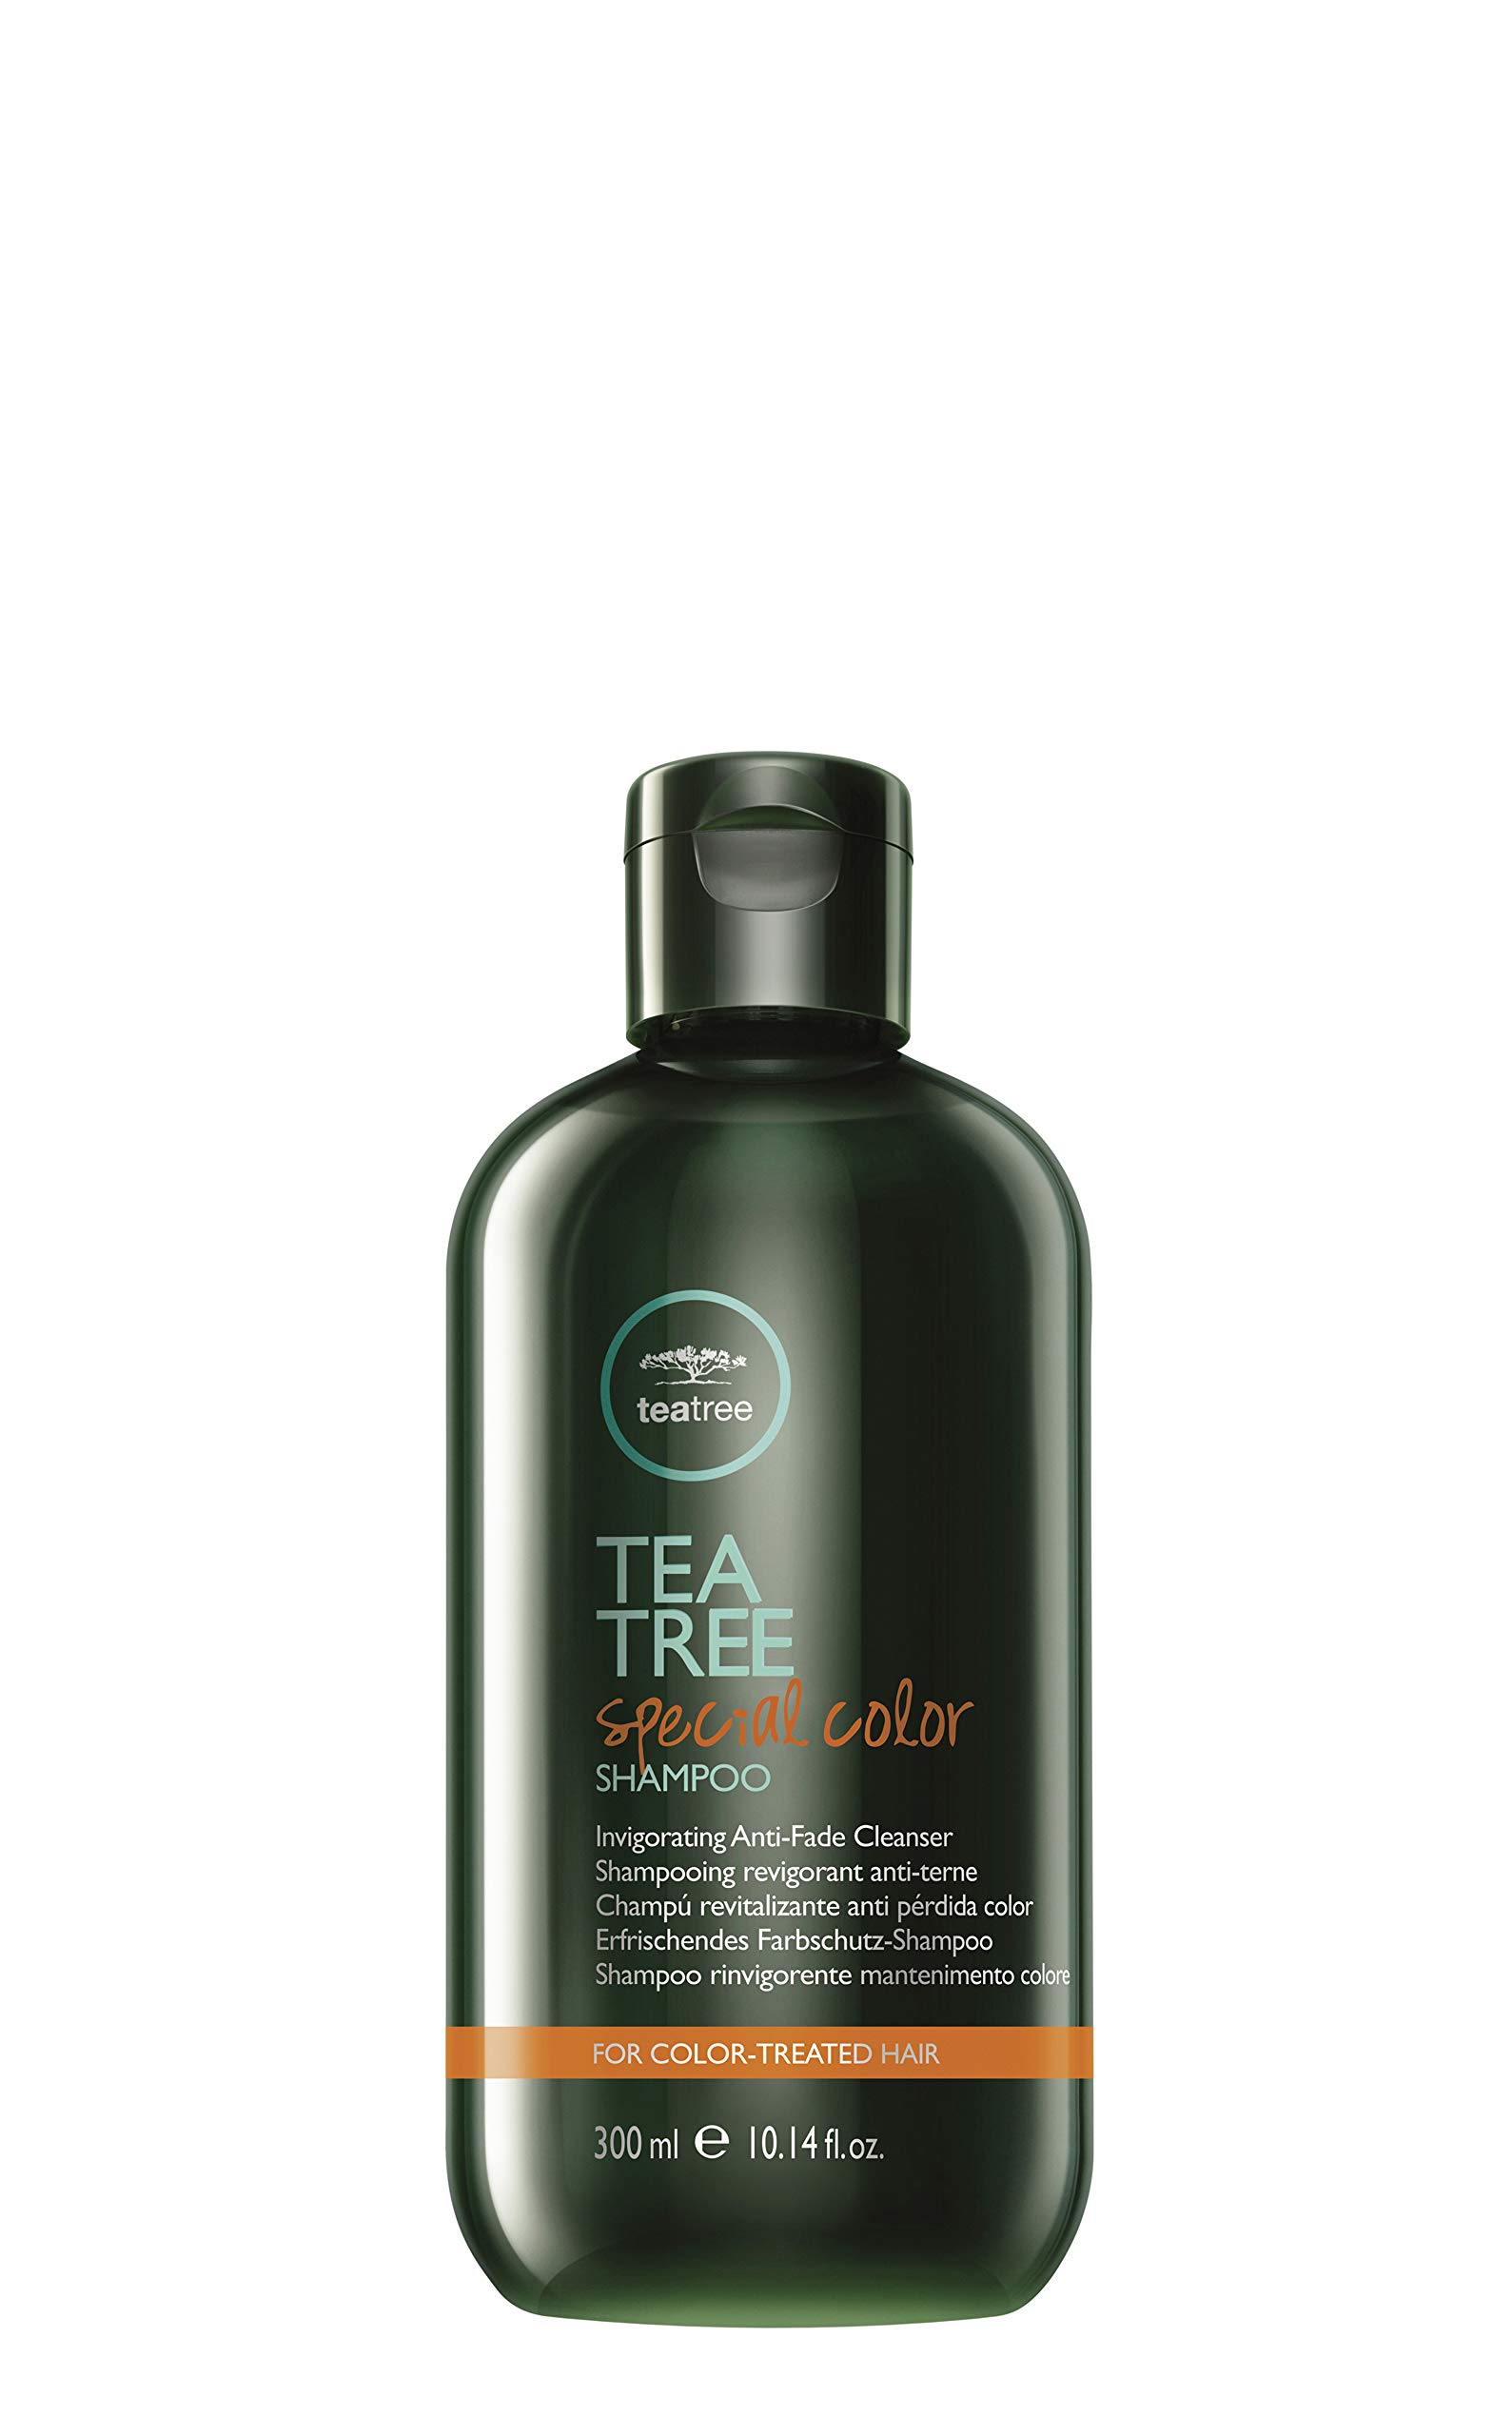 Tea Tree Tea Tree Special Color Shampoo, 10.14 Fl Oz by Tea Tree